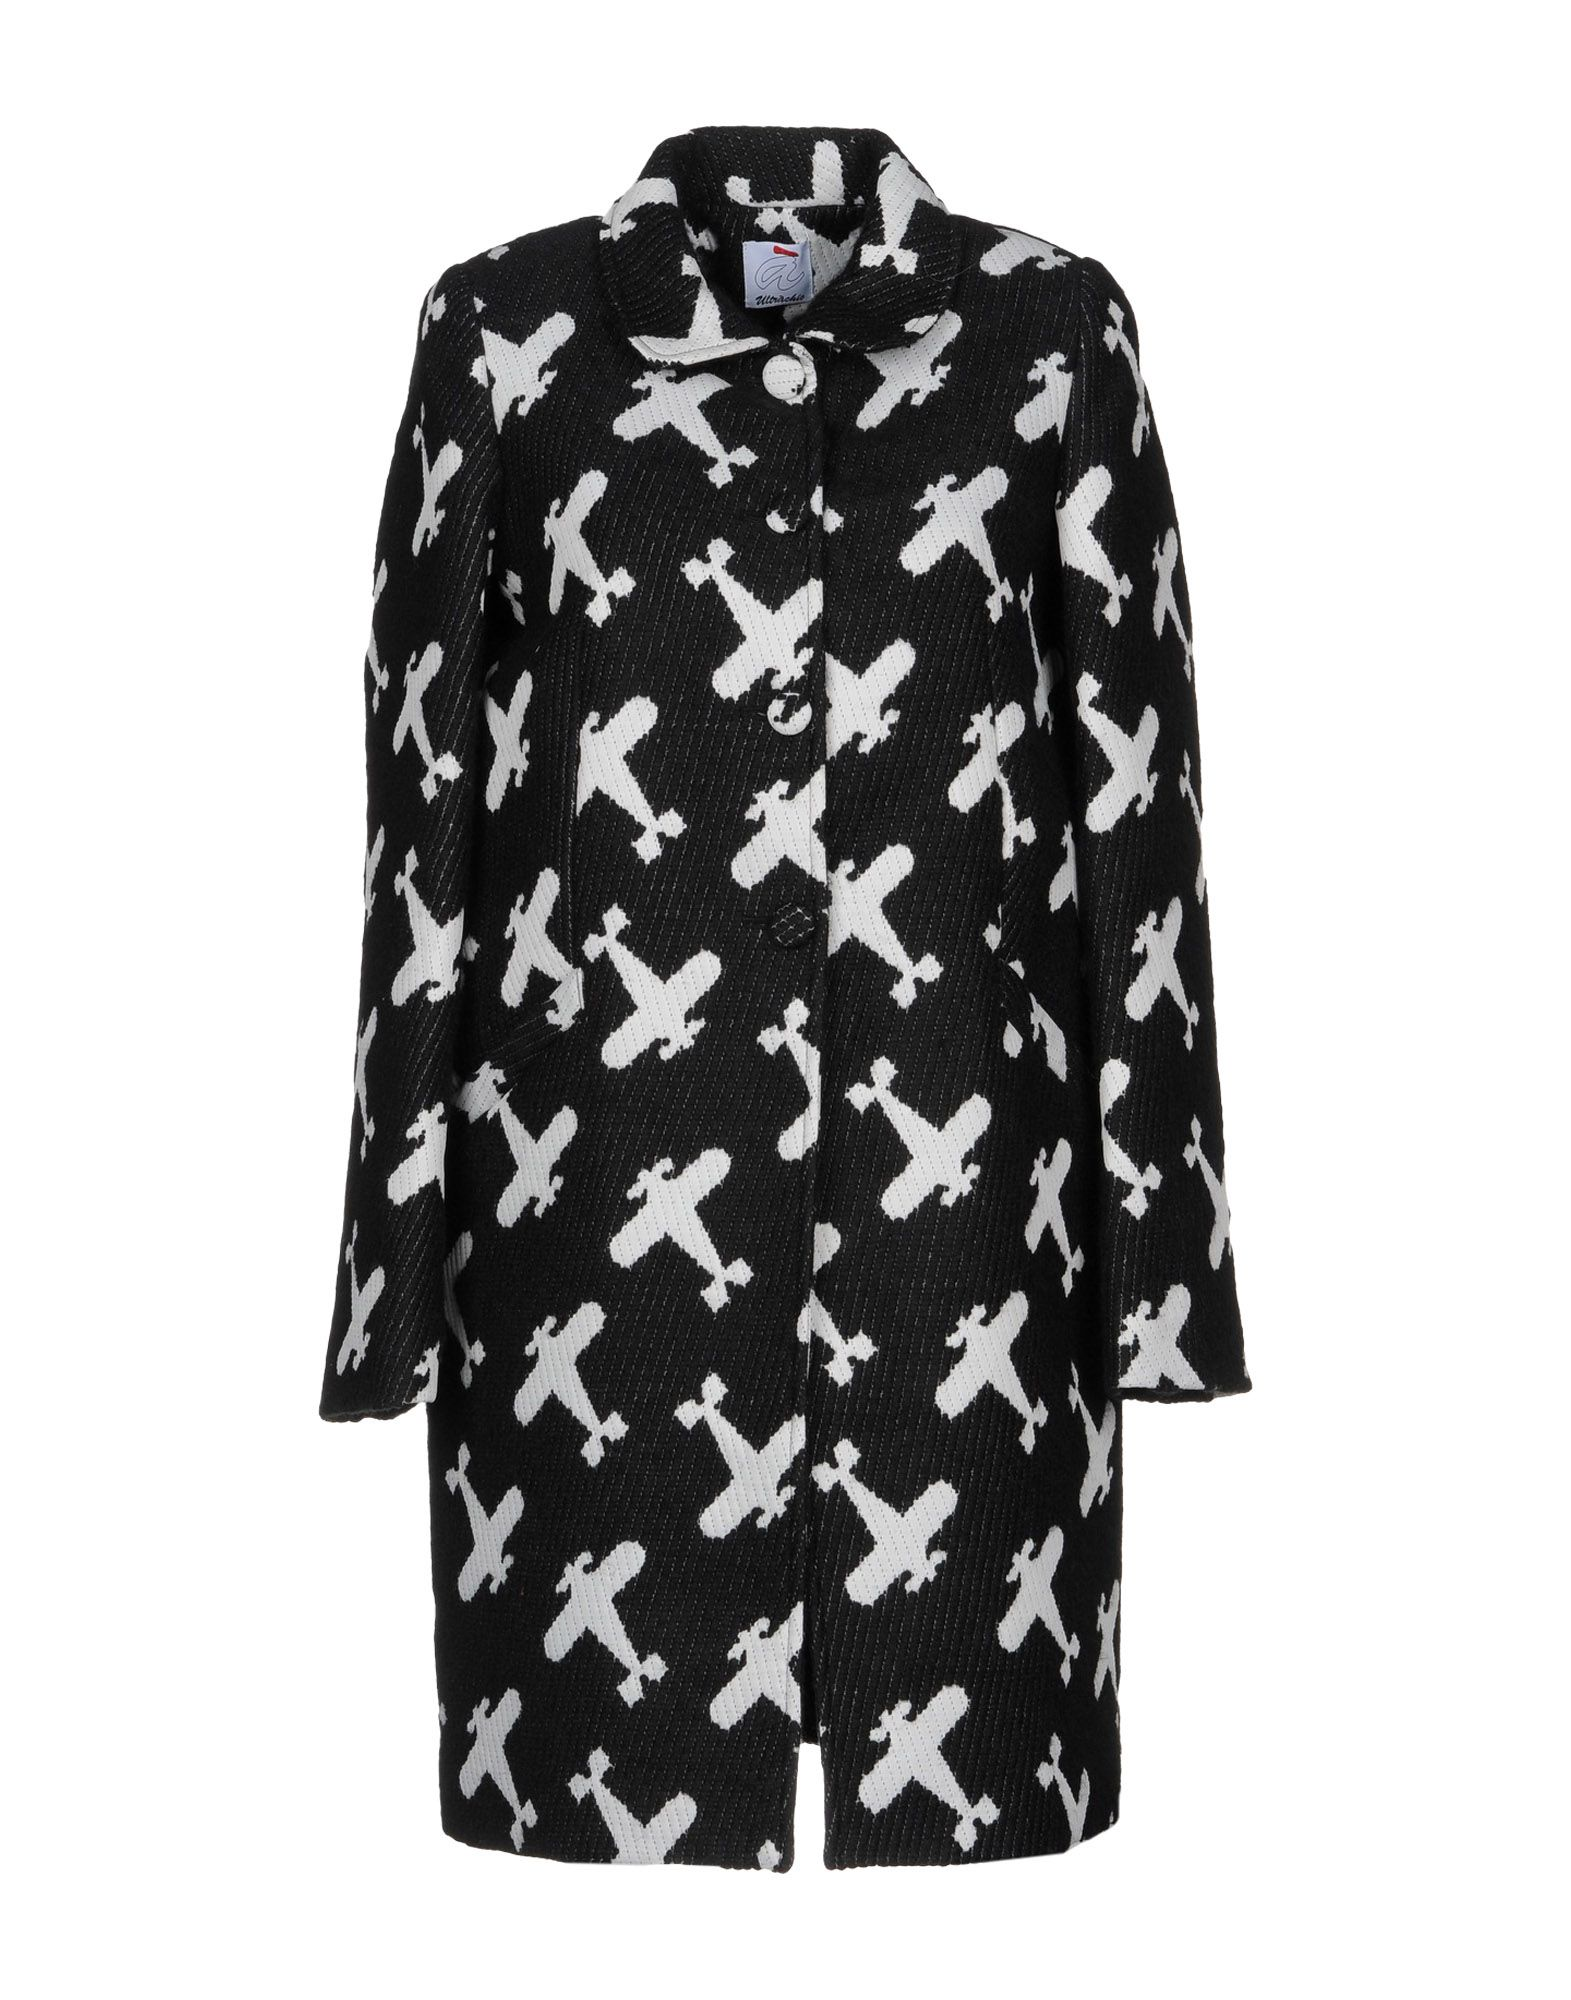 Aereo Print Wool Coat - The Bobby Boga